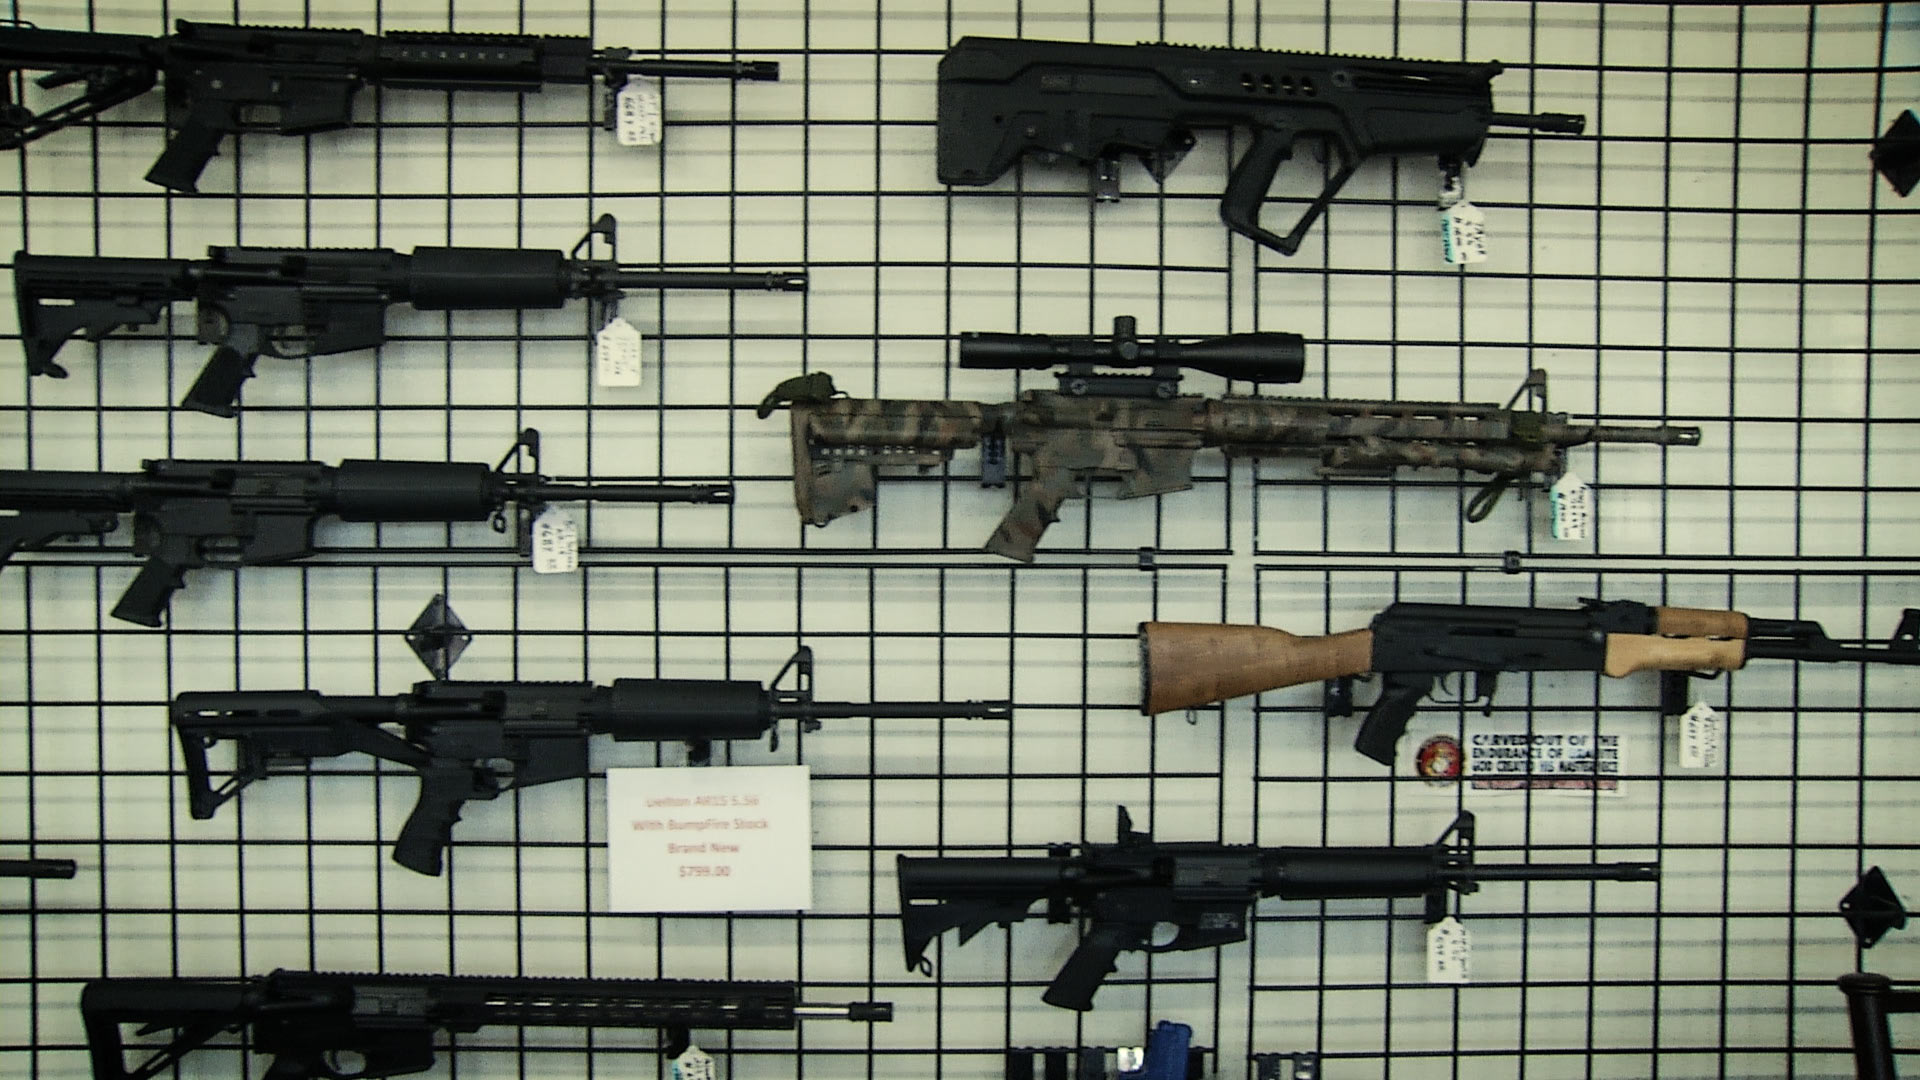 Some Arizona counties have passed resolutions vowing to defend gun rights.